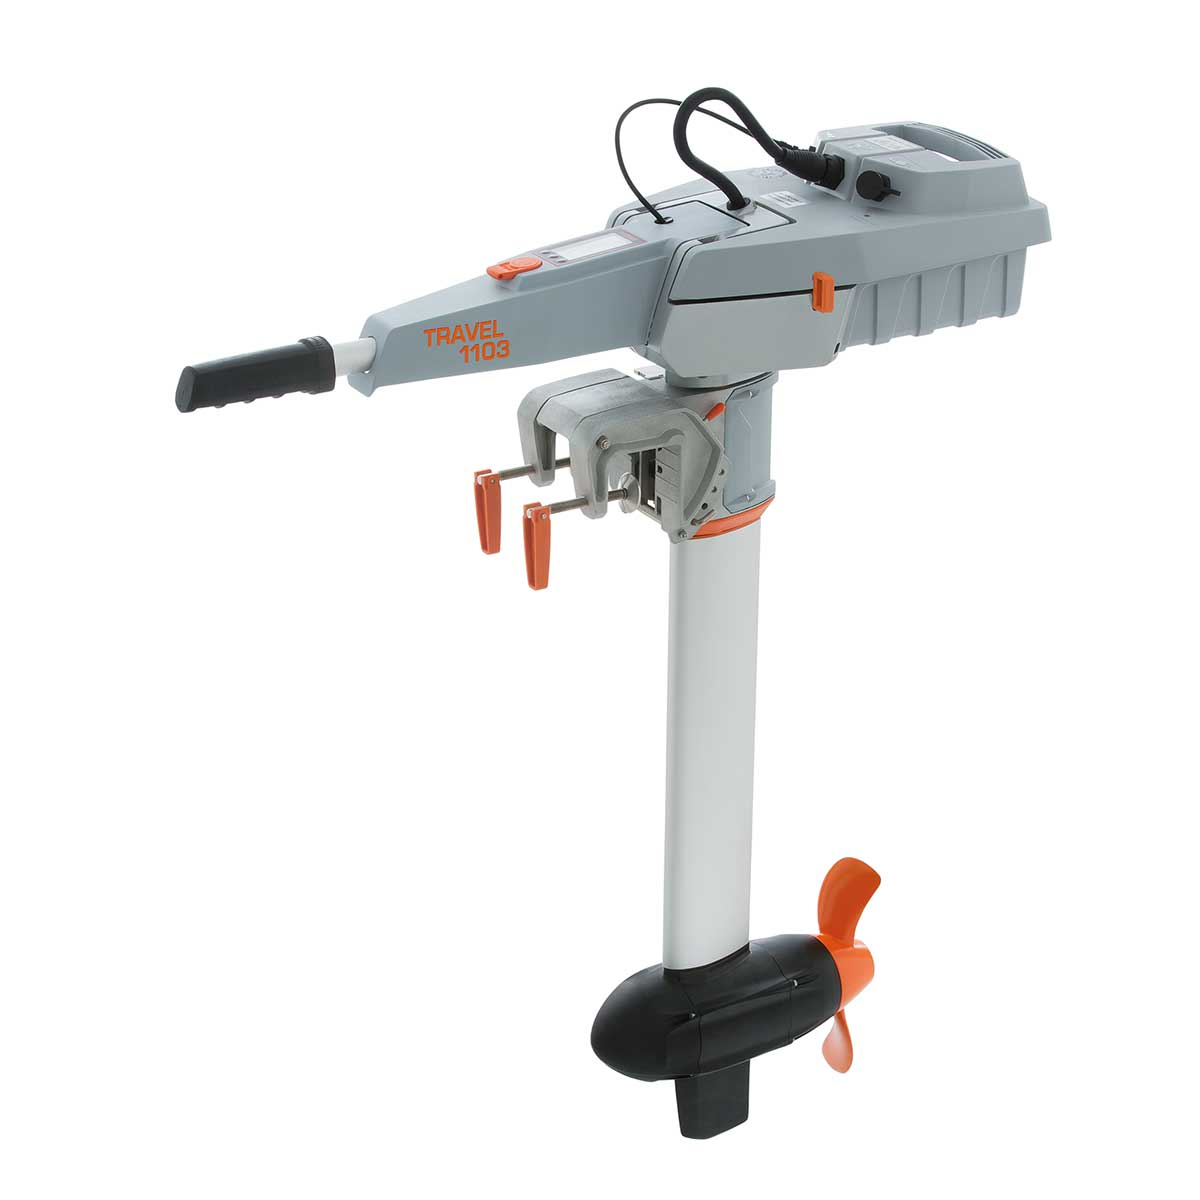 Torqeedo Travel 1103 CS Electric Outboard Motor - Short Shaft